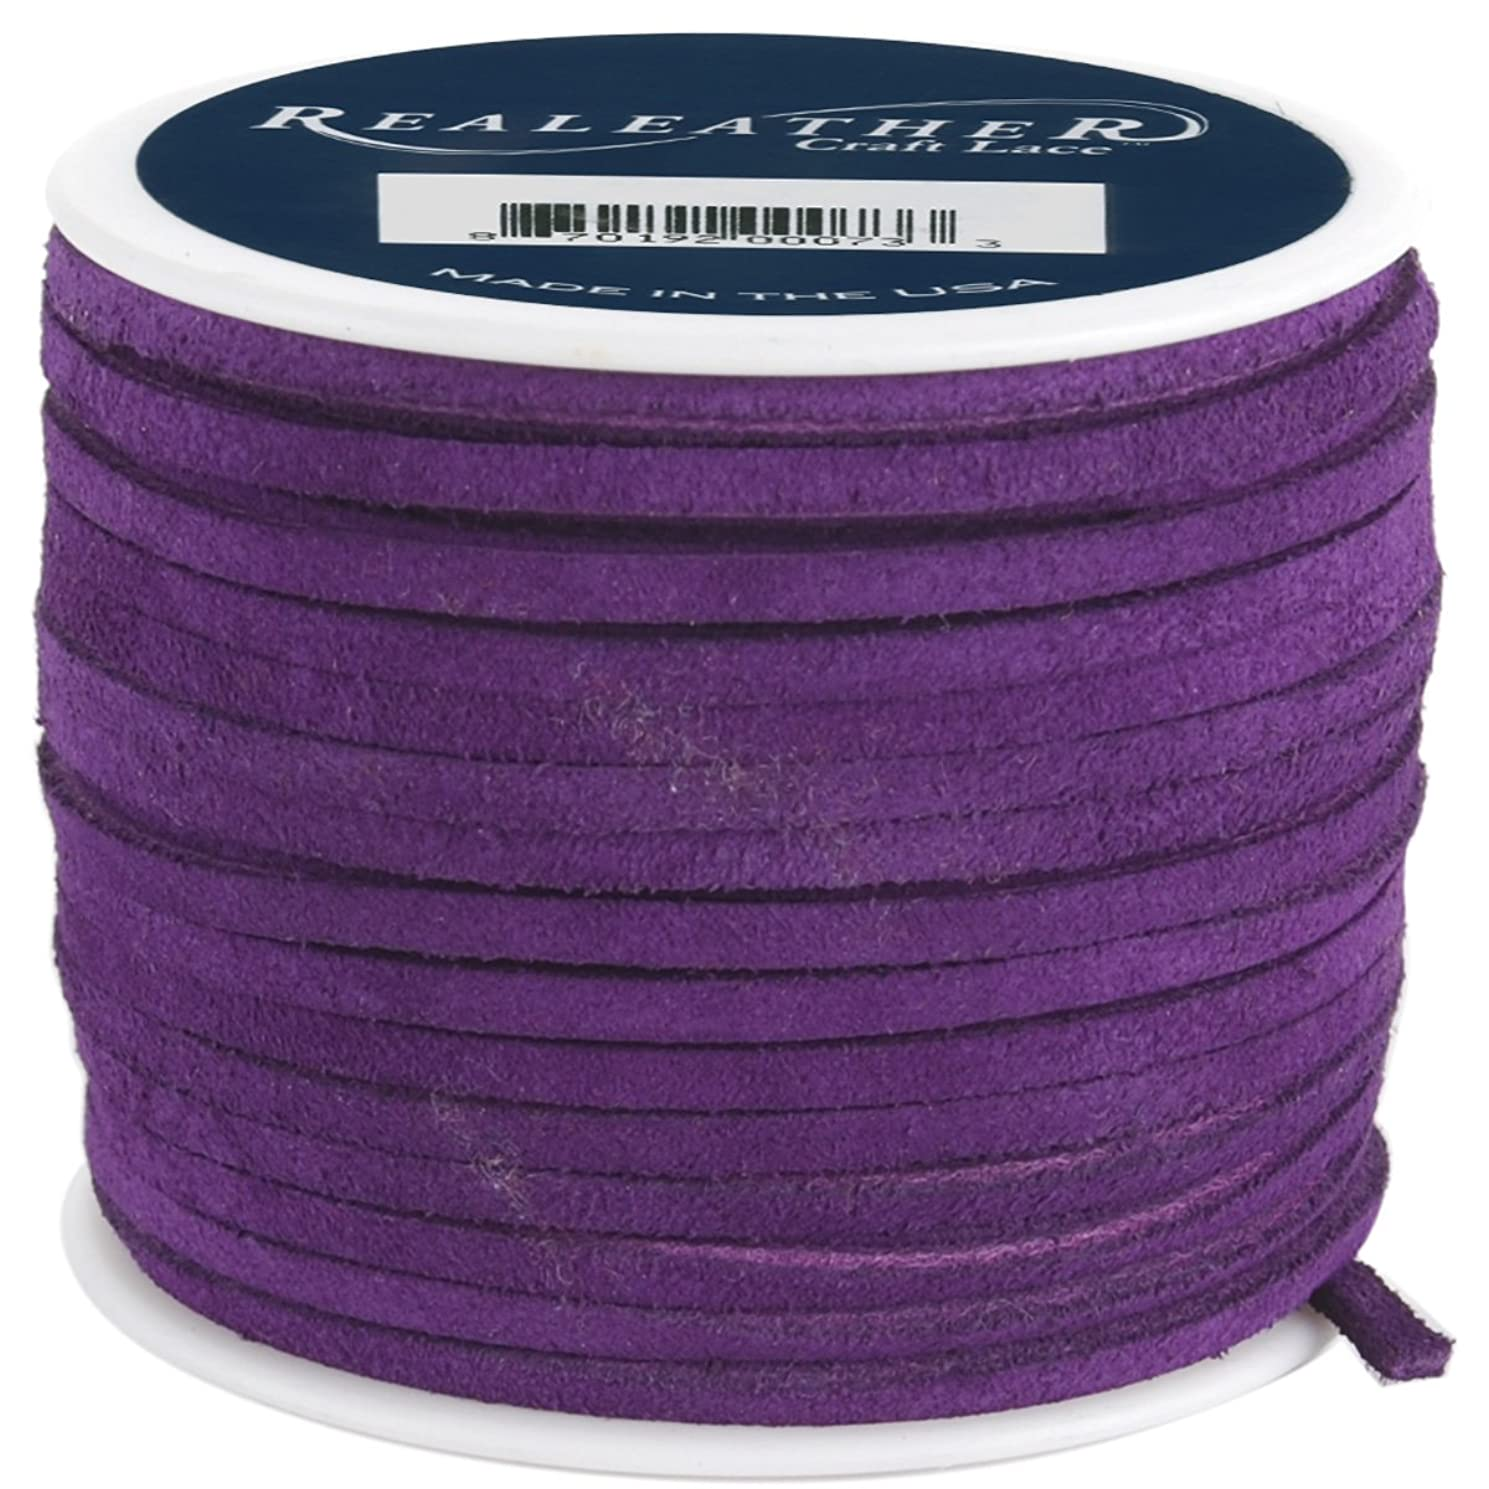 Realeather Crafts Suede Lace, Royal Purple